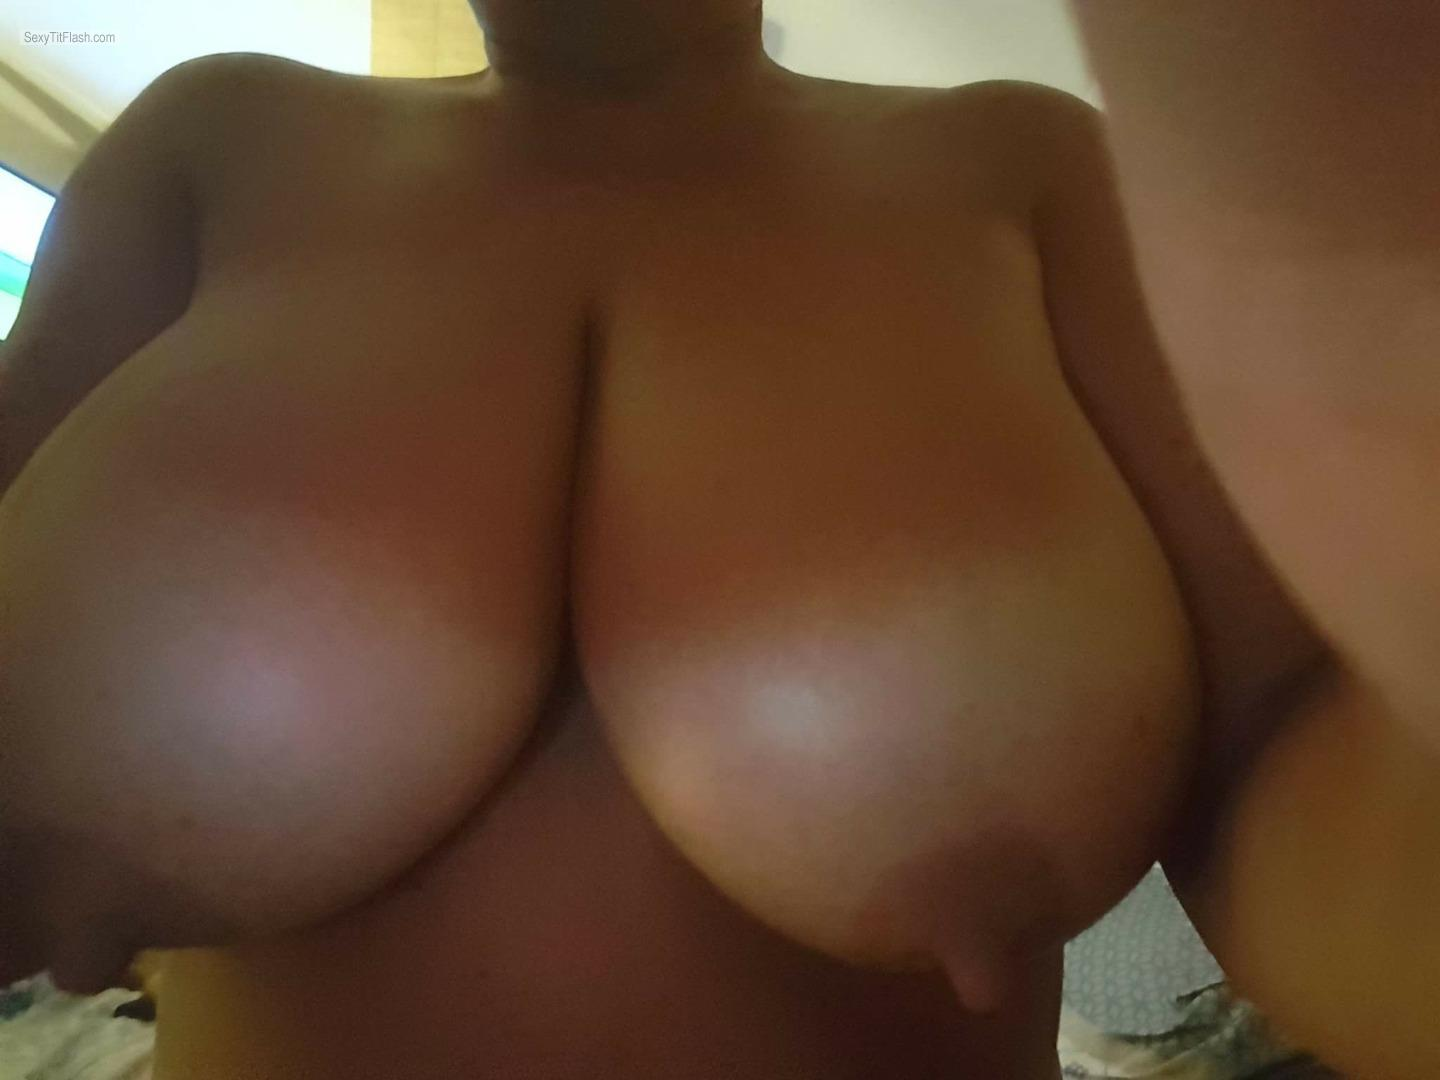 Extremely big Tits Of My Ex-Girlfriend Topless Hot Anon